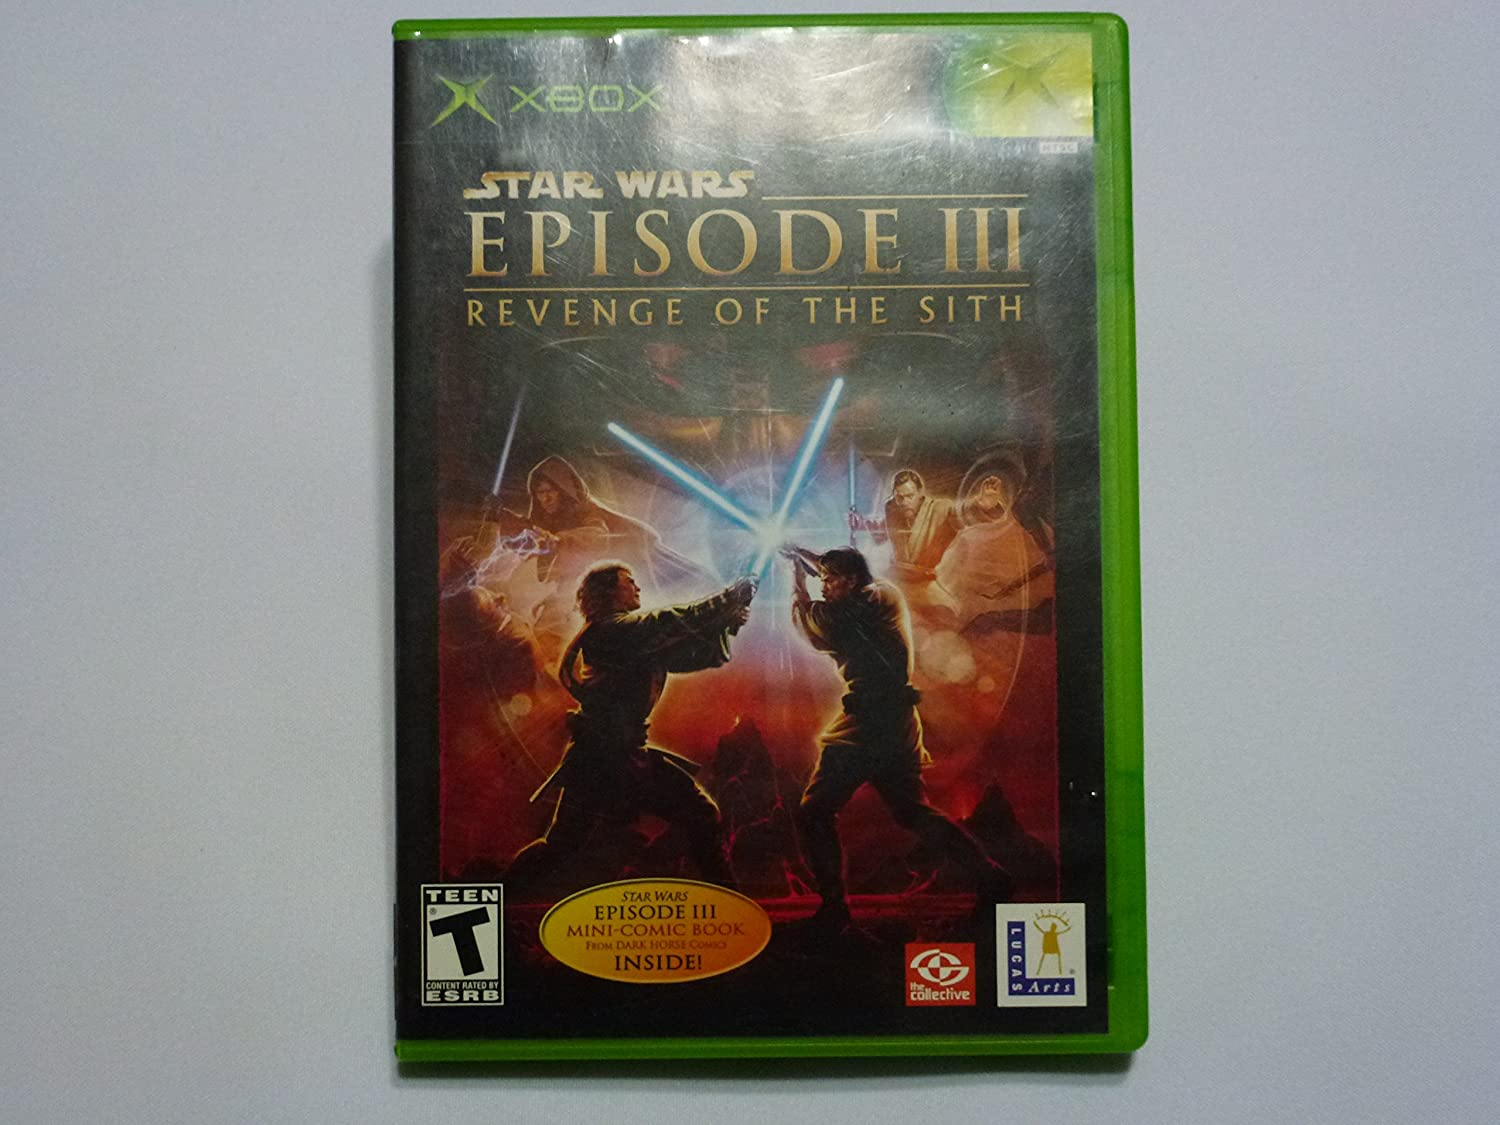 Star Wars Episode Iii Revenge Of The Sith Computer And Video Games Amazon Ca